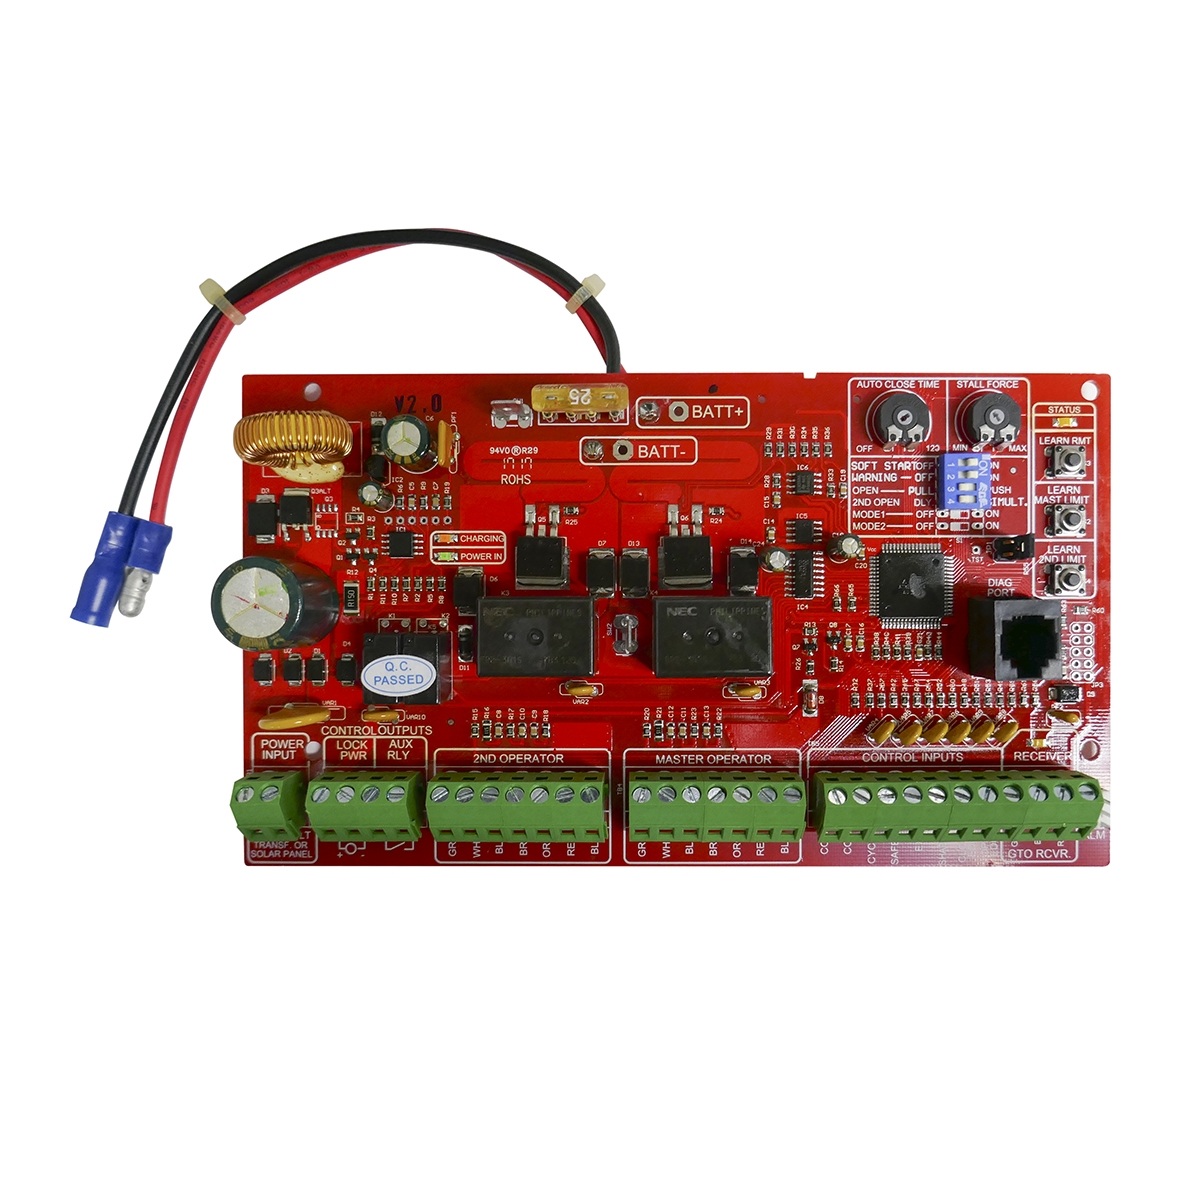 r4211 automatic gate opener replacement control mighty mule storemighty mule replacement circuitboard r4211 mighty mule replacement control board